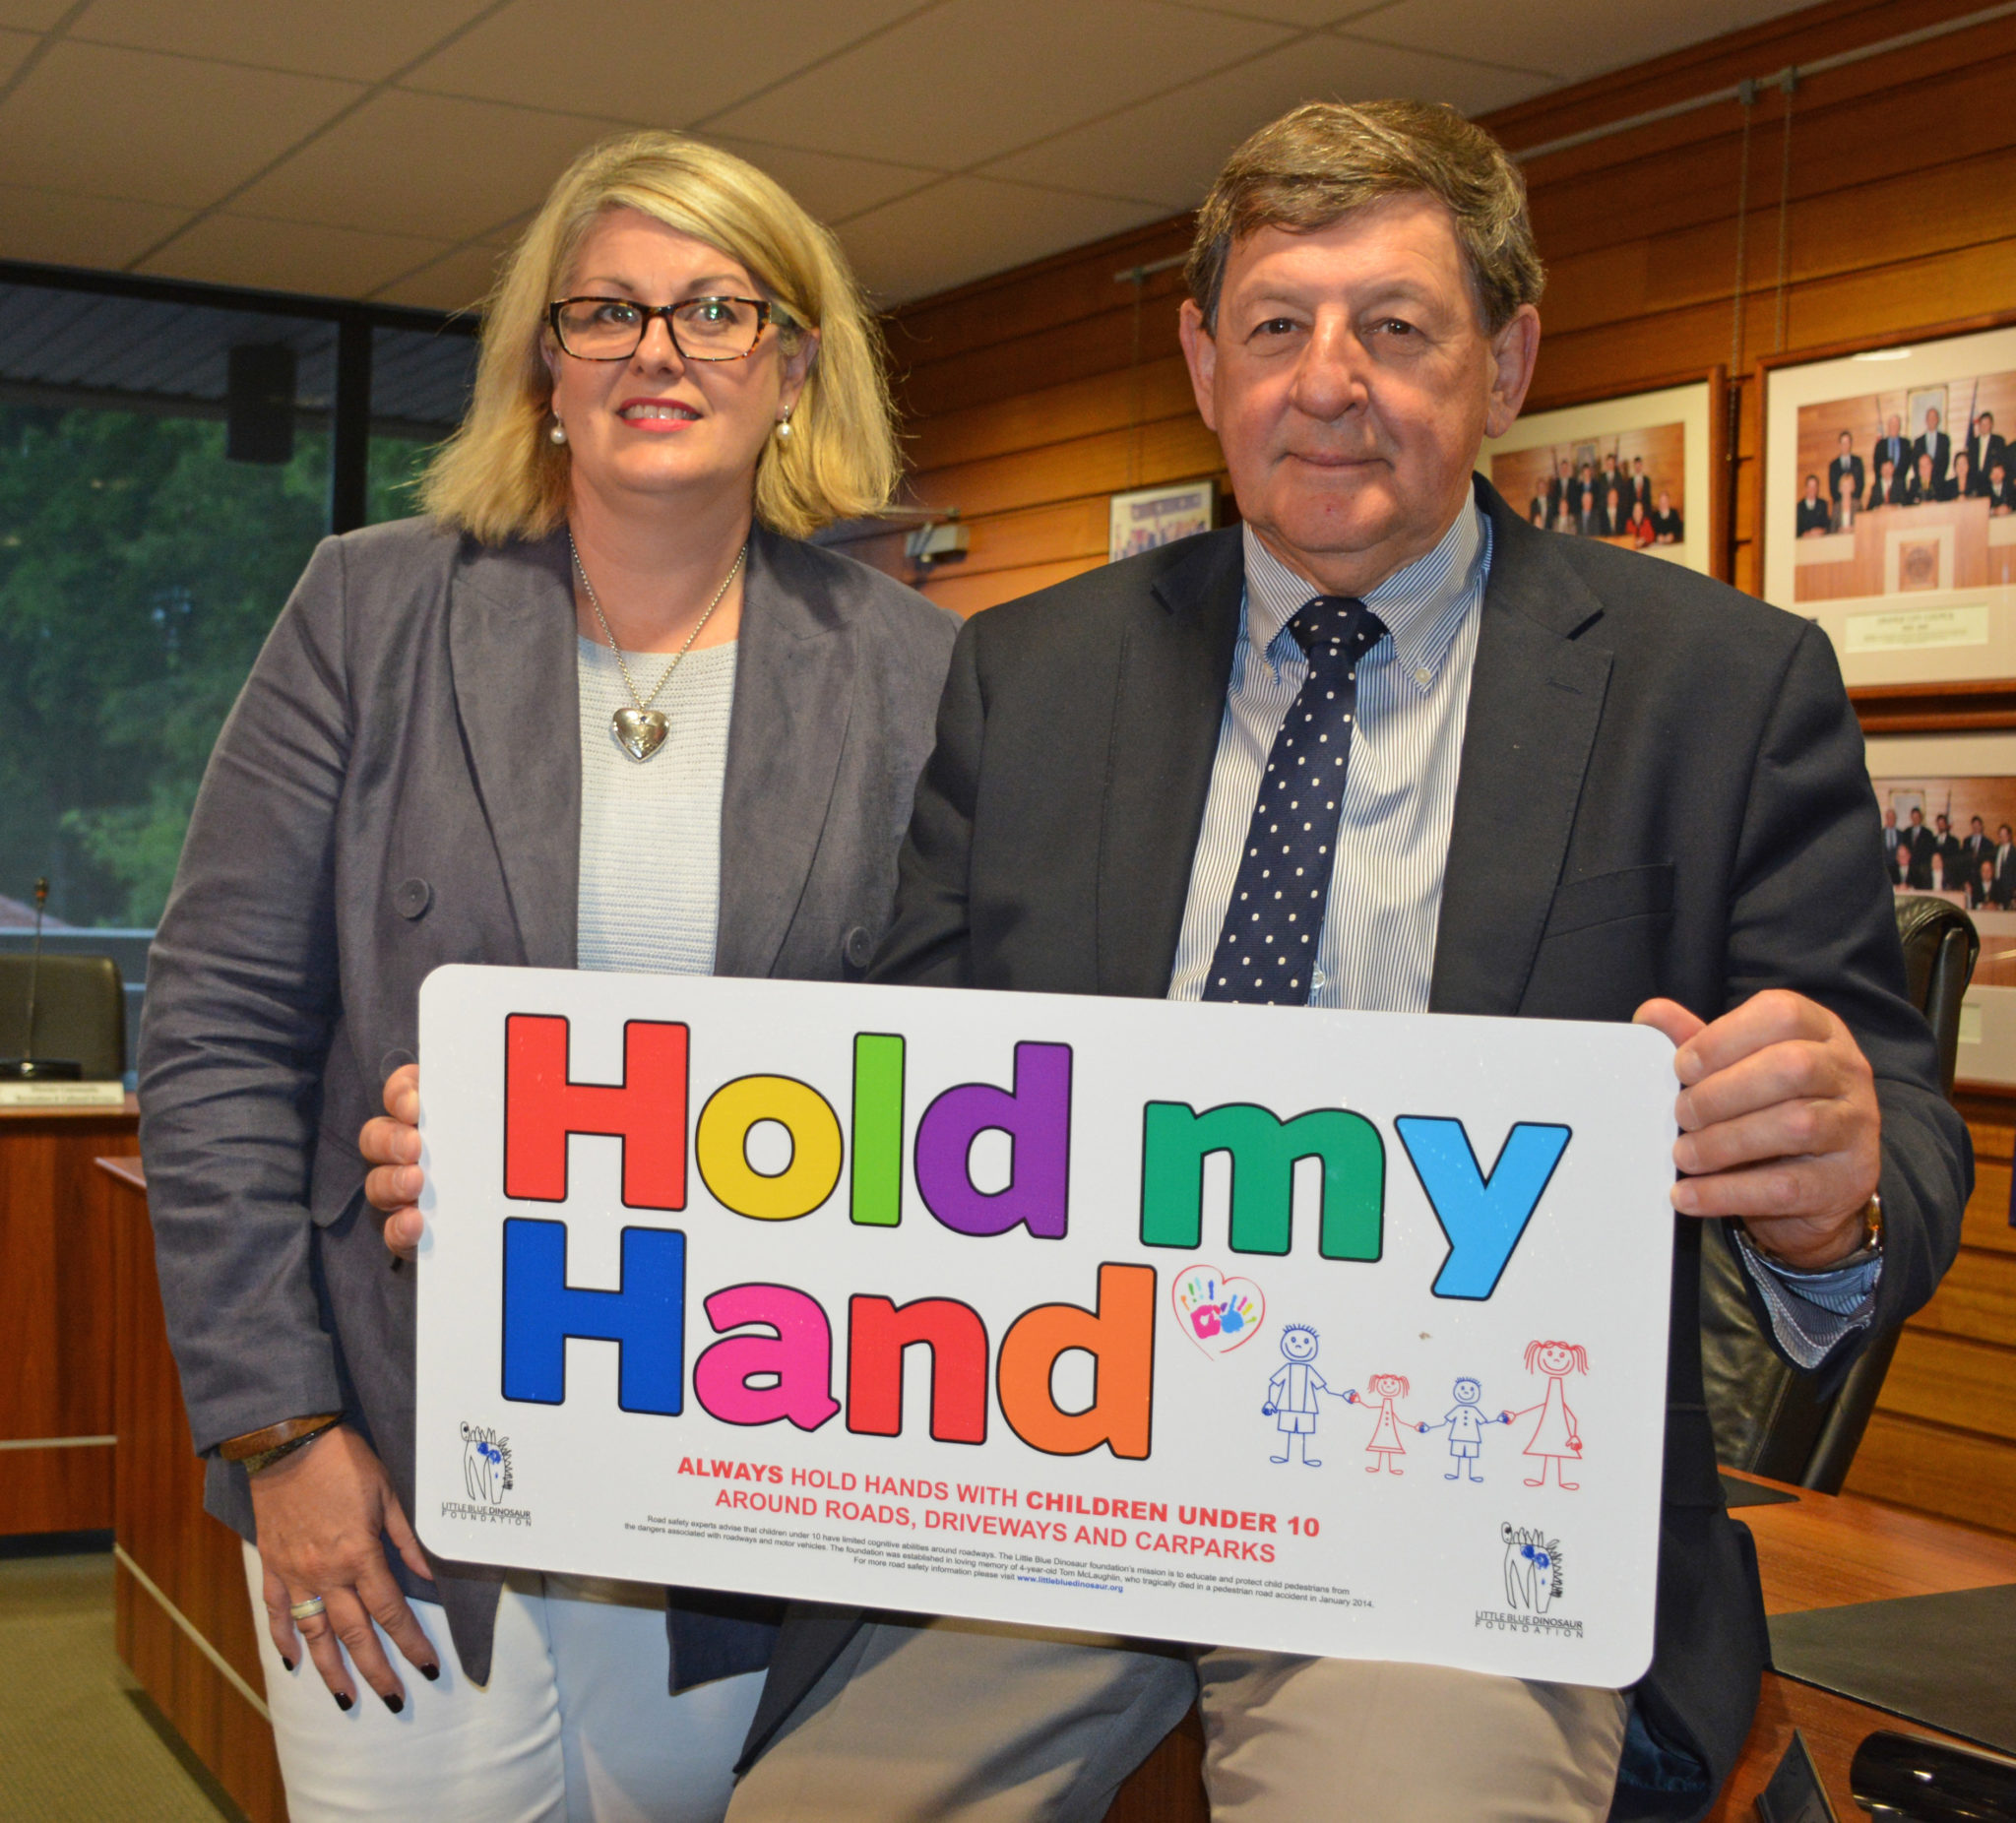 Michelle McLaughlin and Mayor Reg KIdd hold one of the new 'Hold My Hand' road safety signs